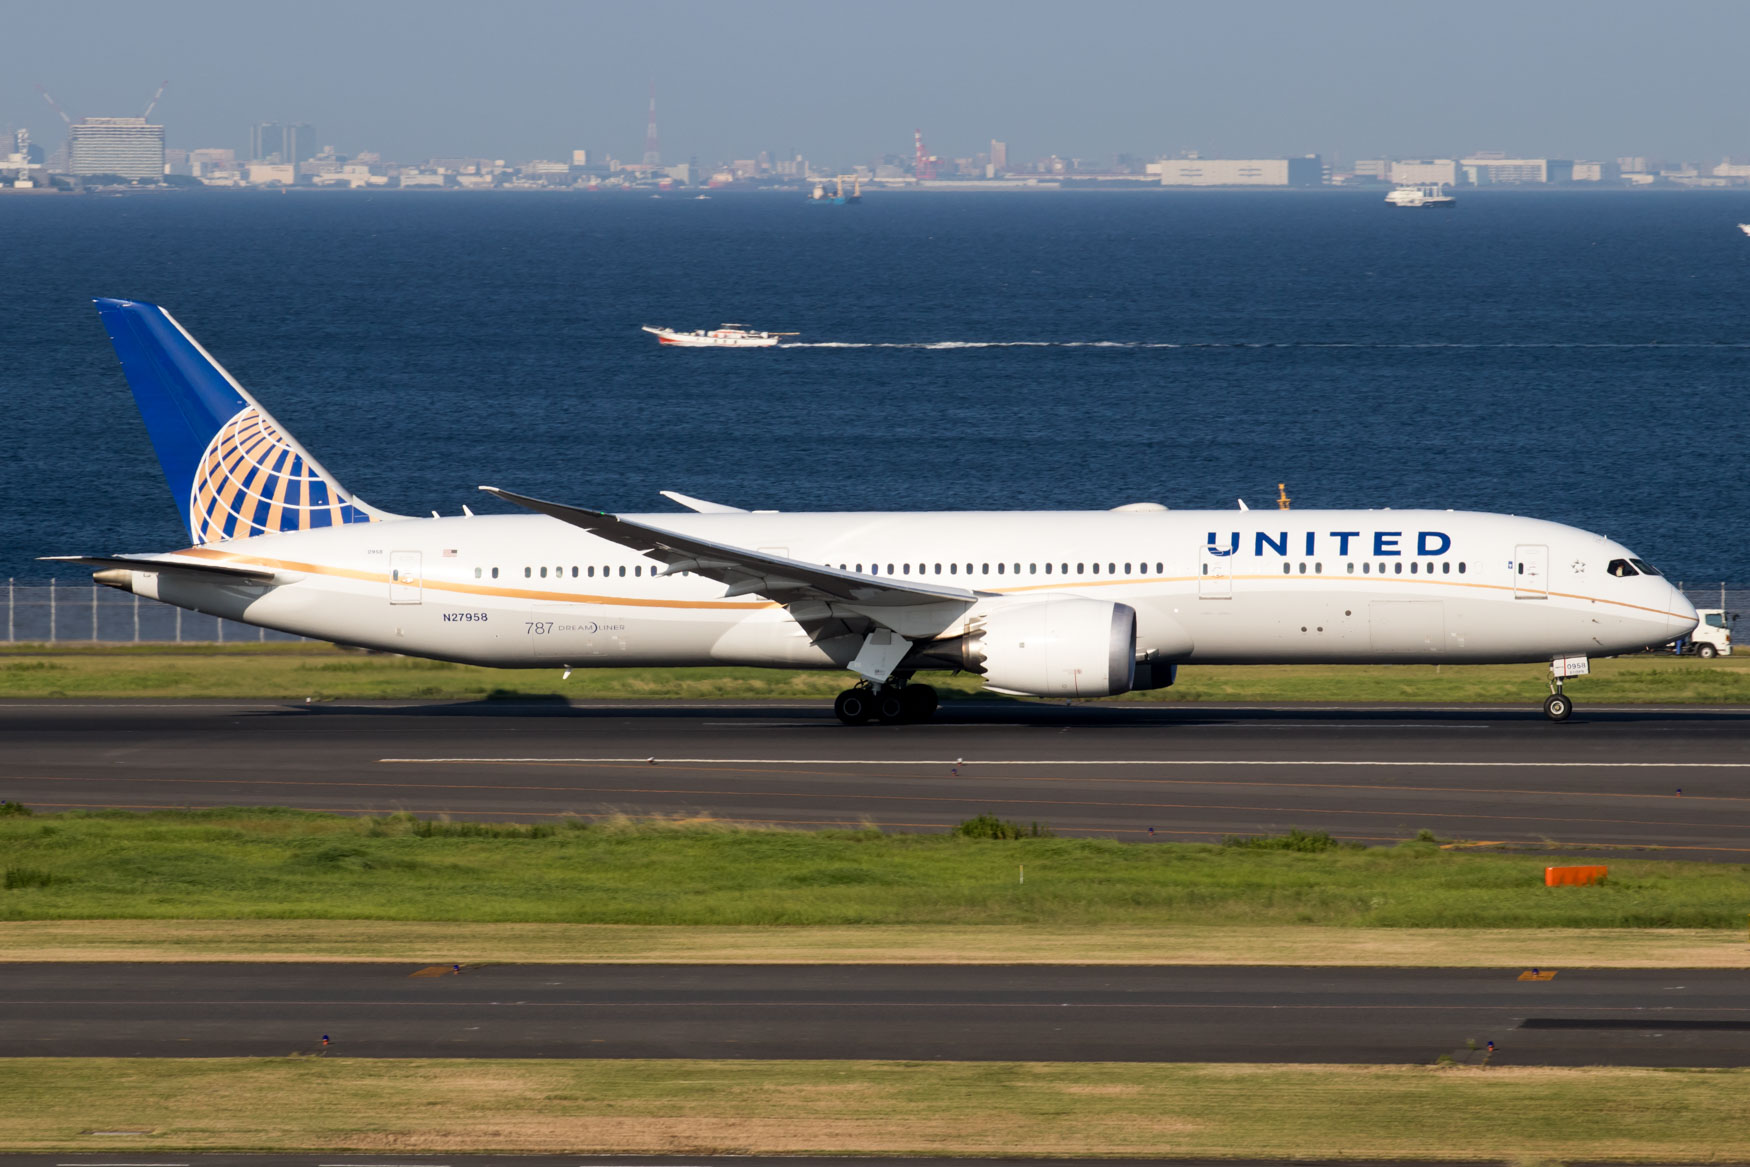 United Airlines 787-9